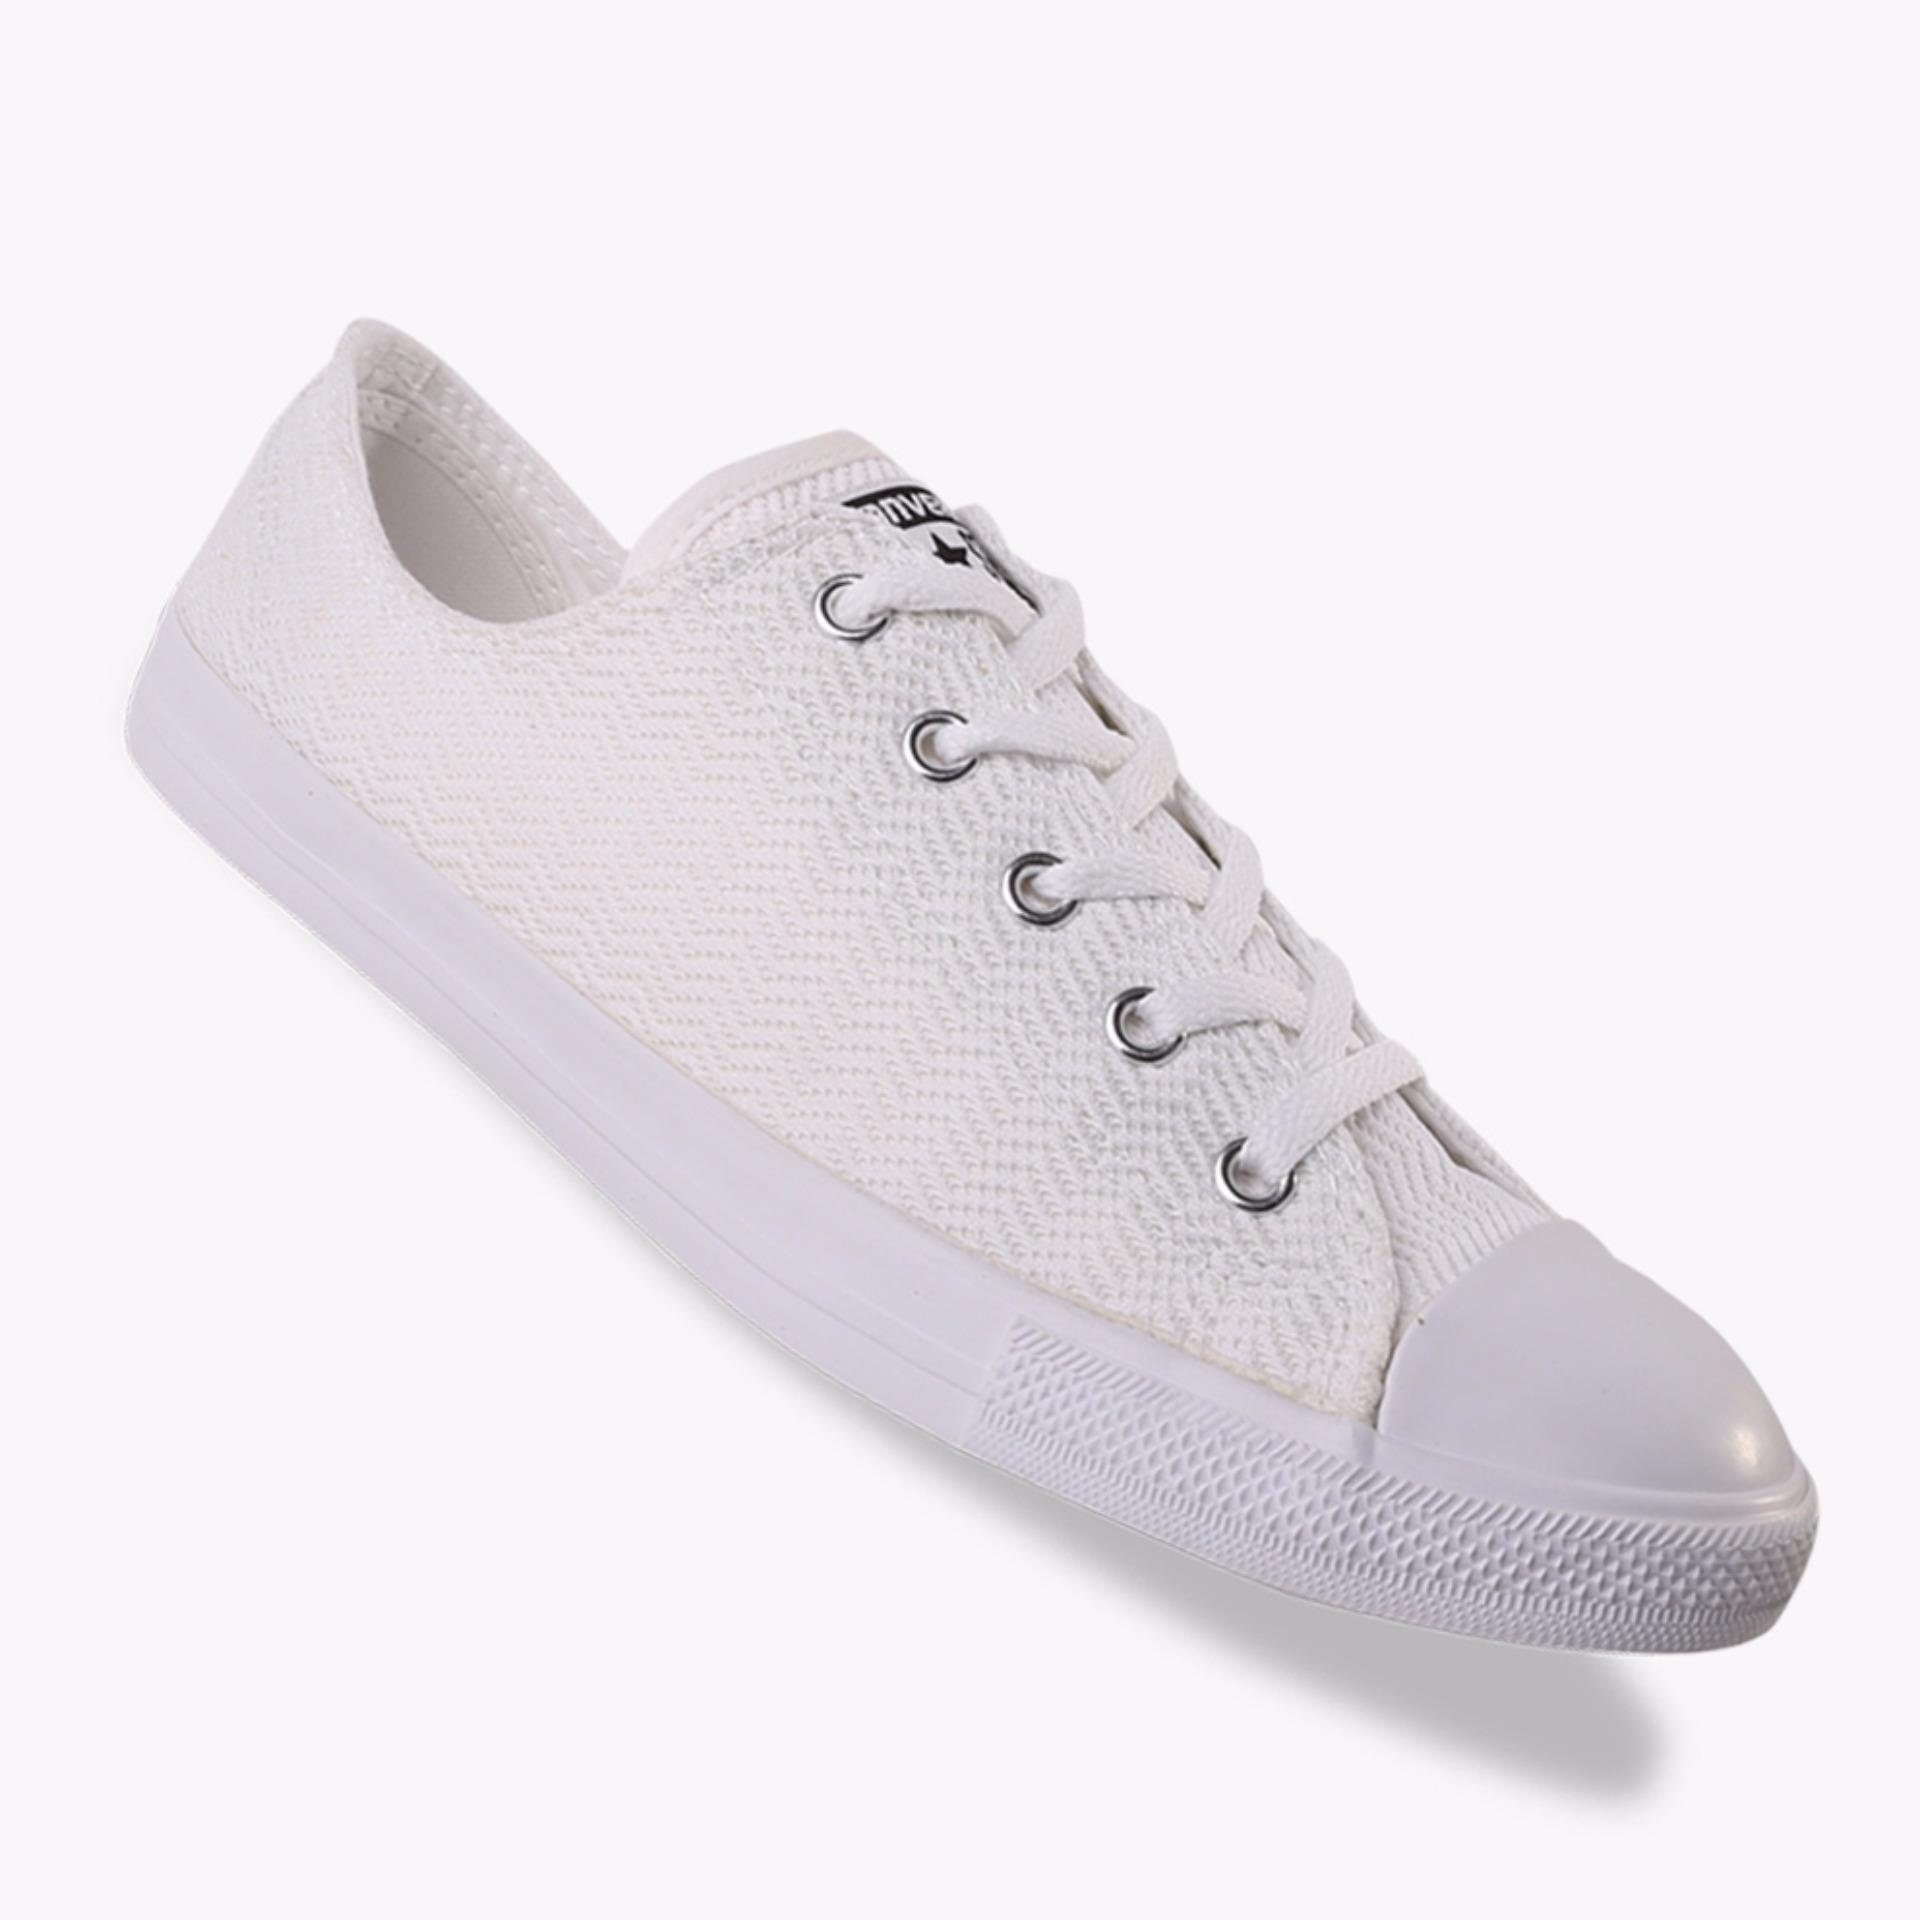 Jual Converse Chuck Taylor All Star Dainty Ox Women S Sneakers Shoes Putih Import